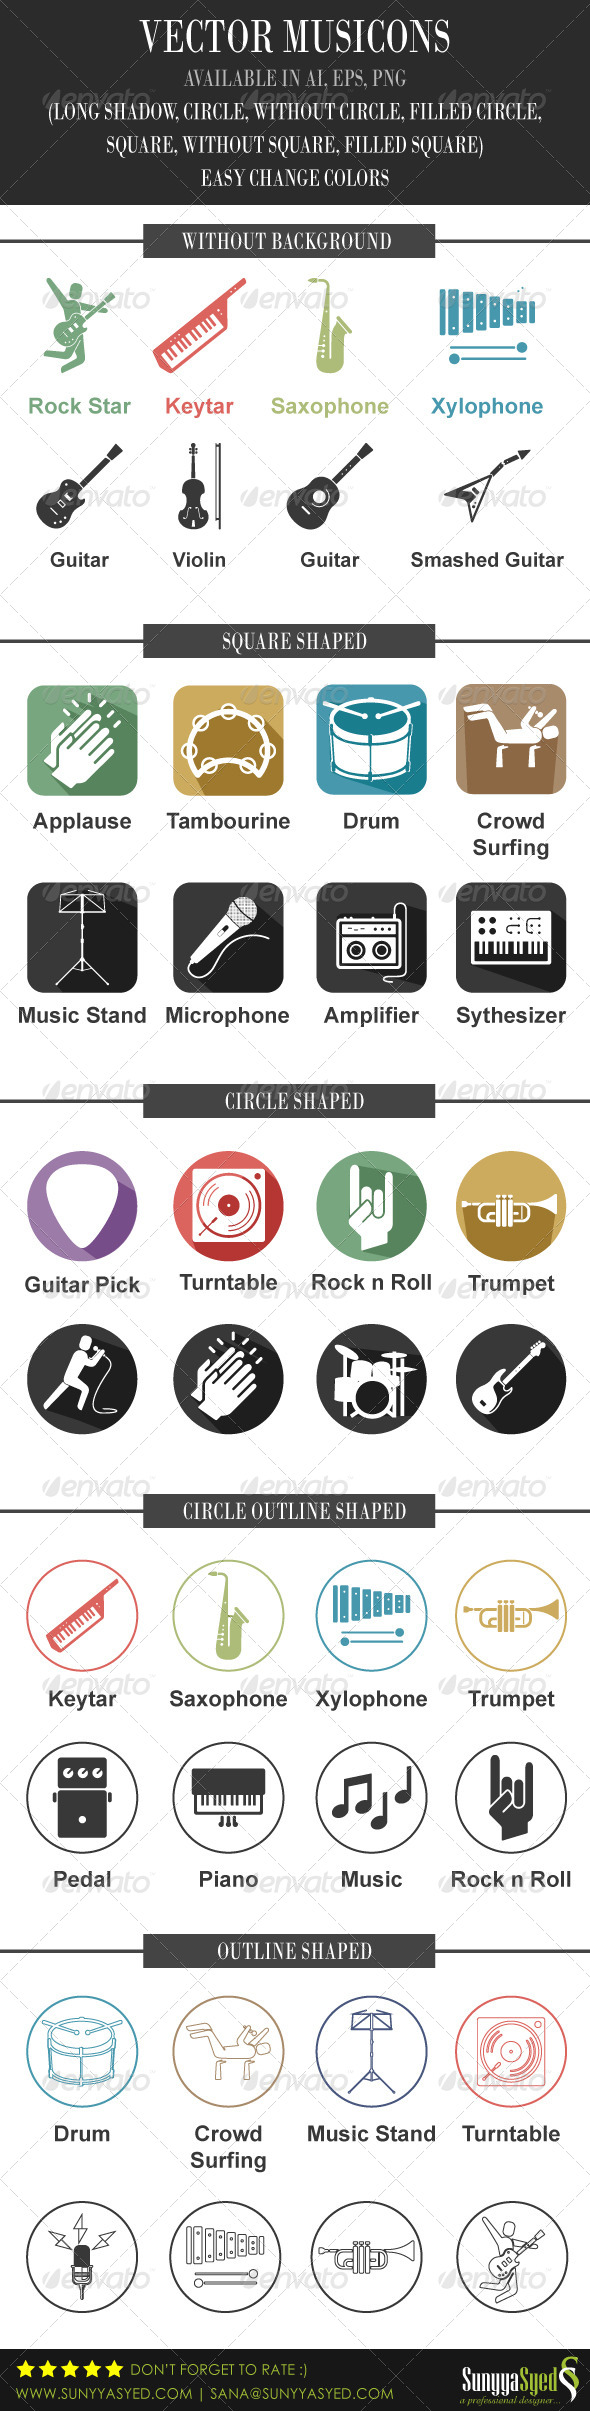 GraphicRiver Vector Musicons 5740211